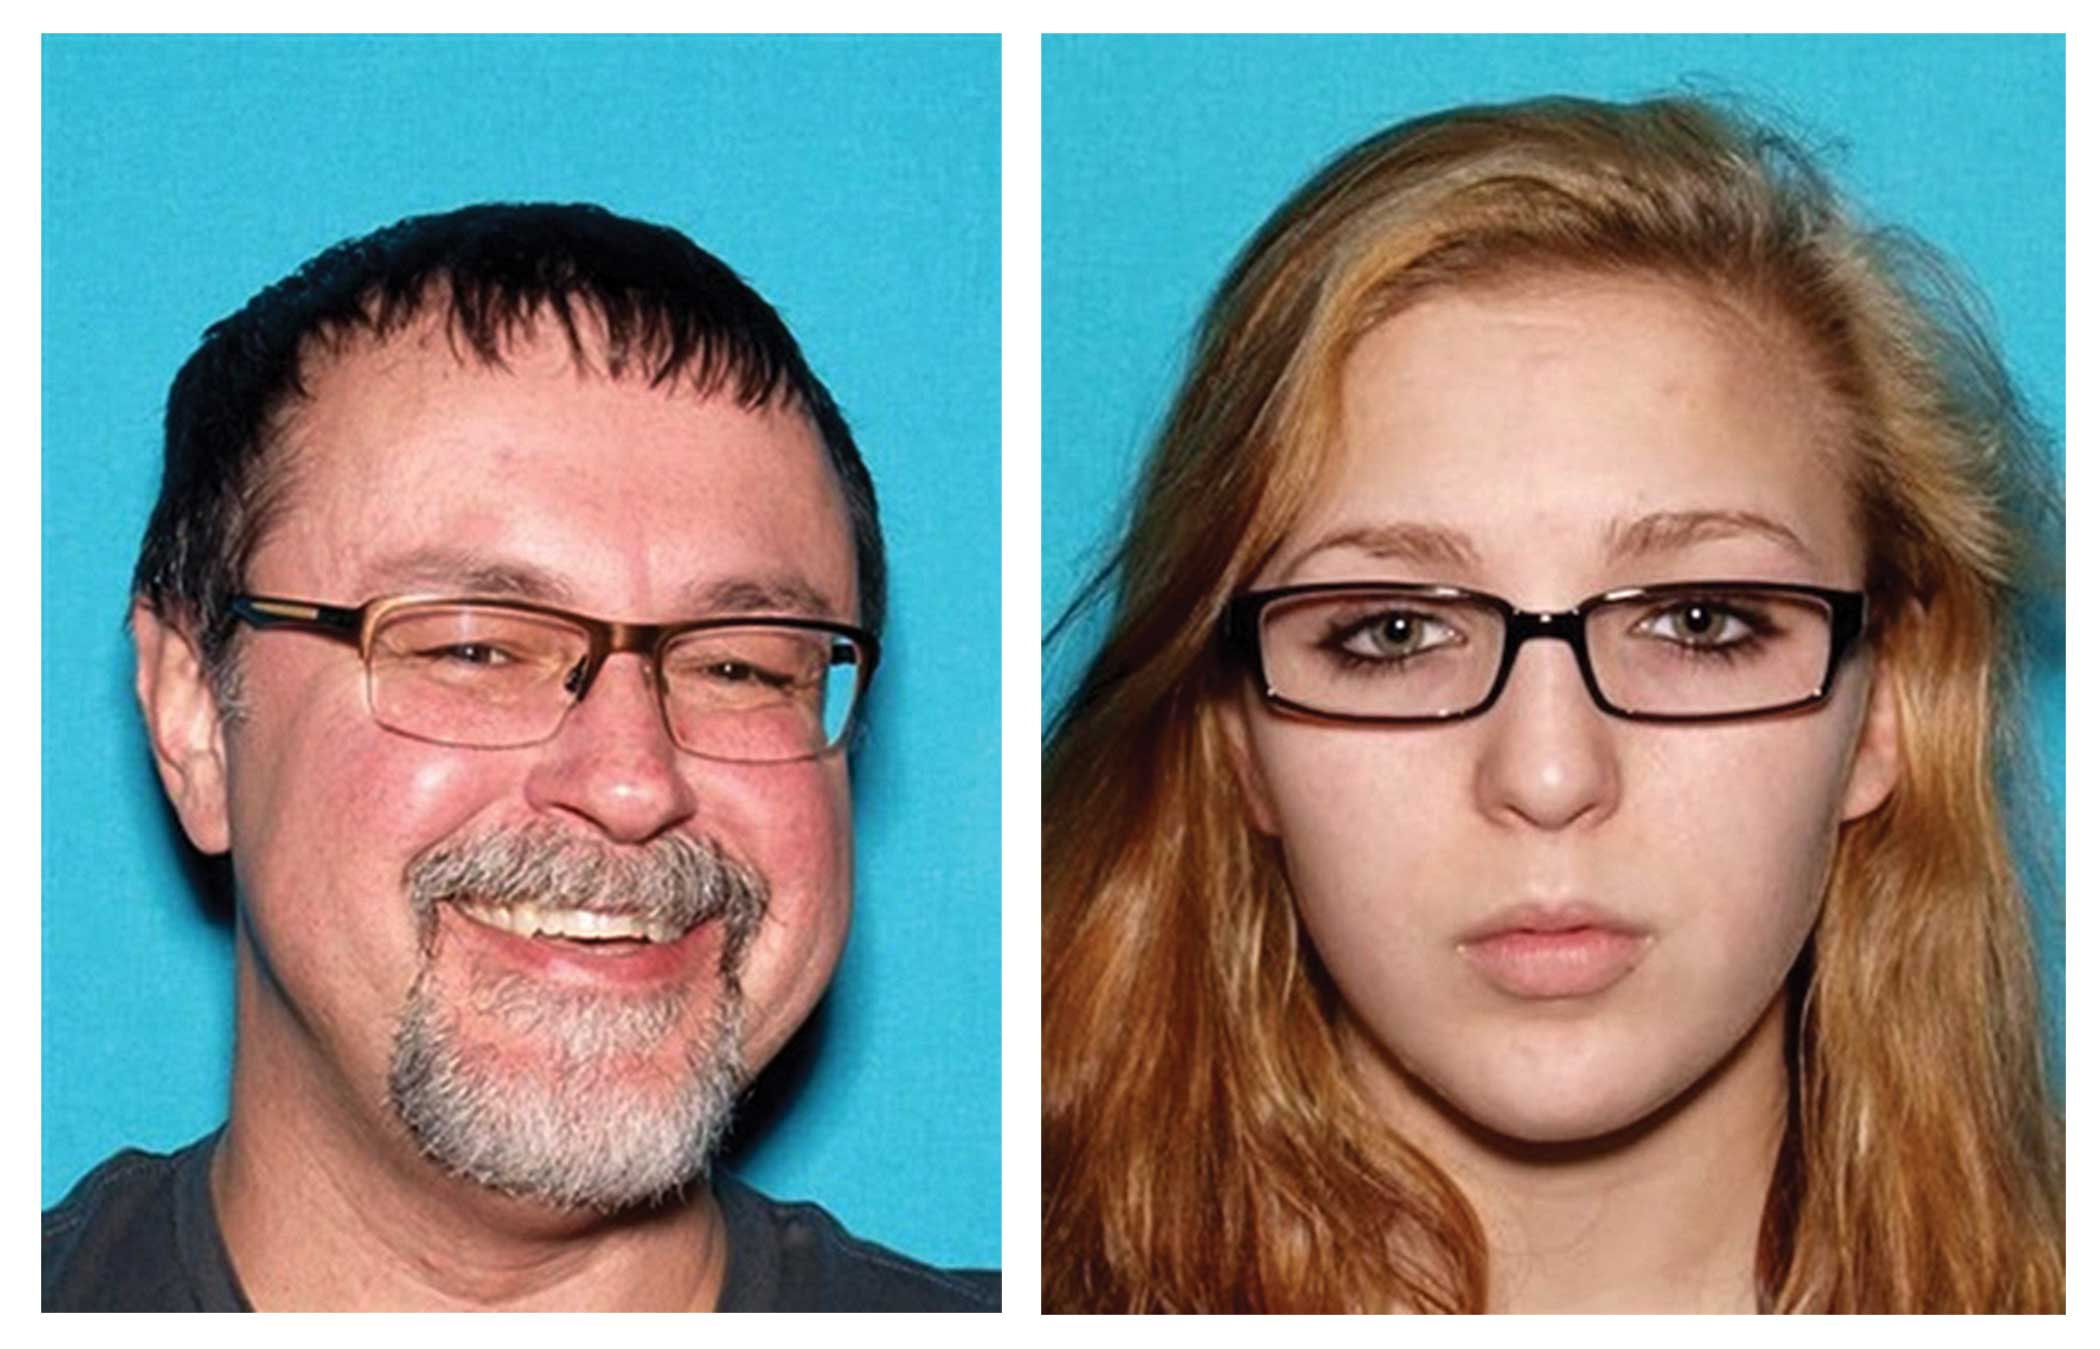 Tad Cummins, left, and Elizabeth Thomas. The Tennessee Bureau of Investigation said it remains  extremely concerned  about the well-being of Thomas, who was last seen on March 13, 2017, in Columbia, Tenn.